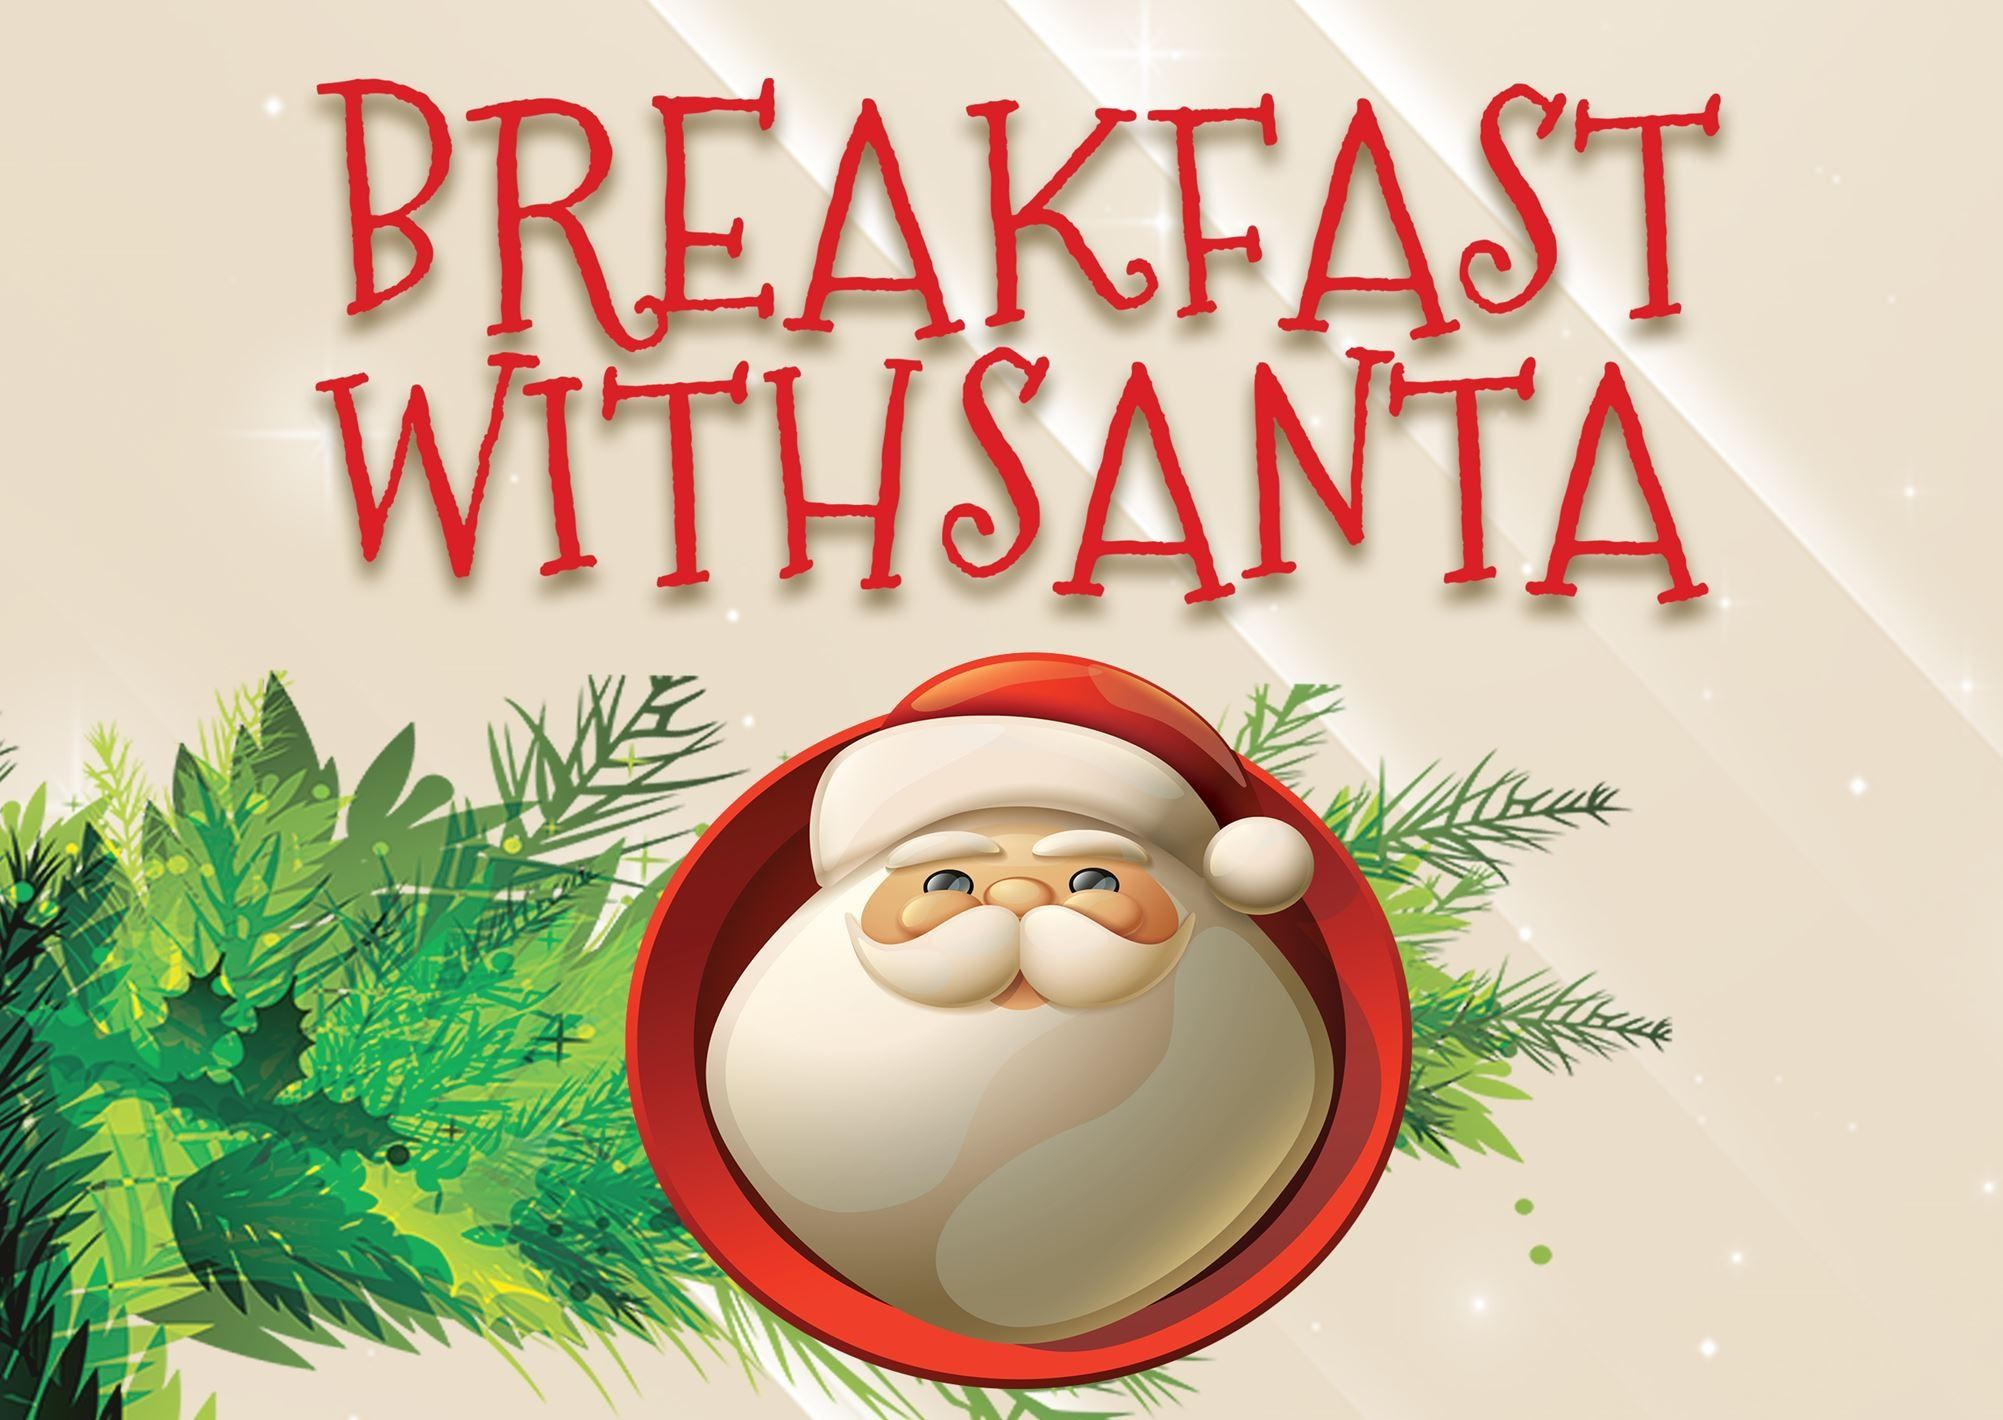 Breakfast with Santa (image)